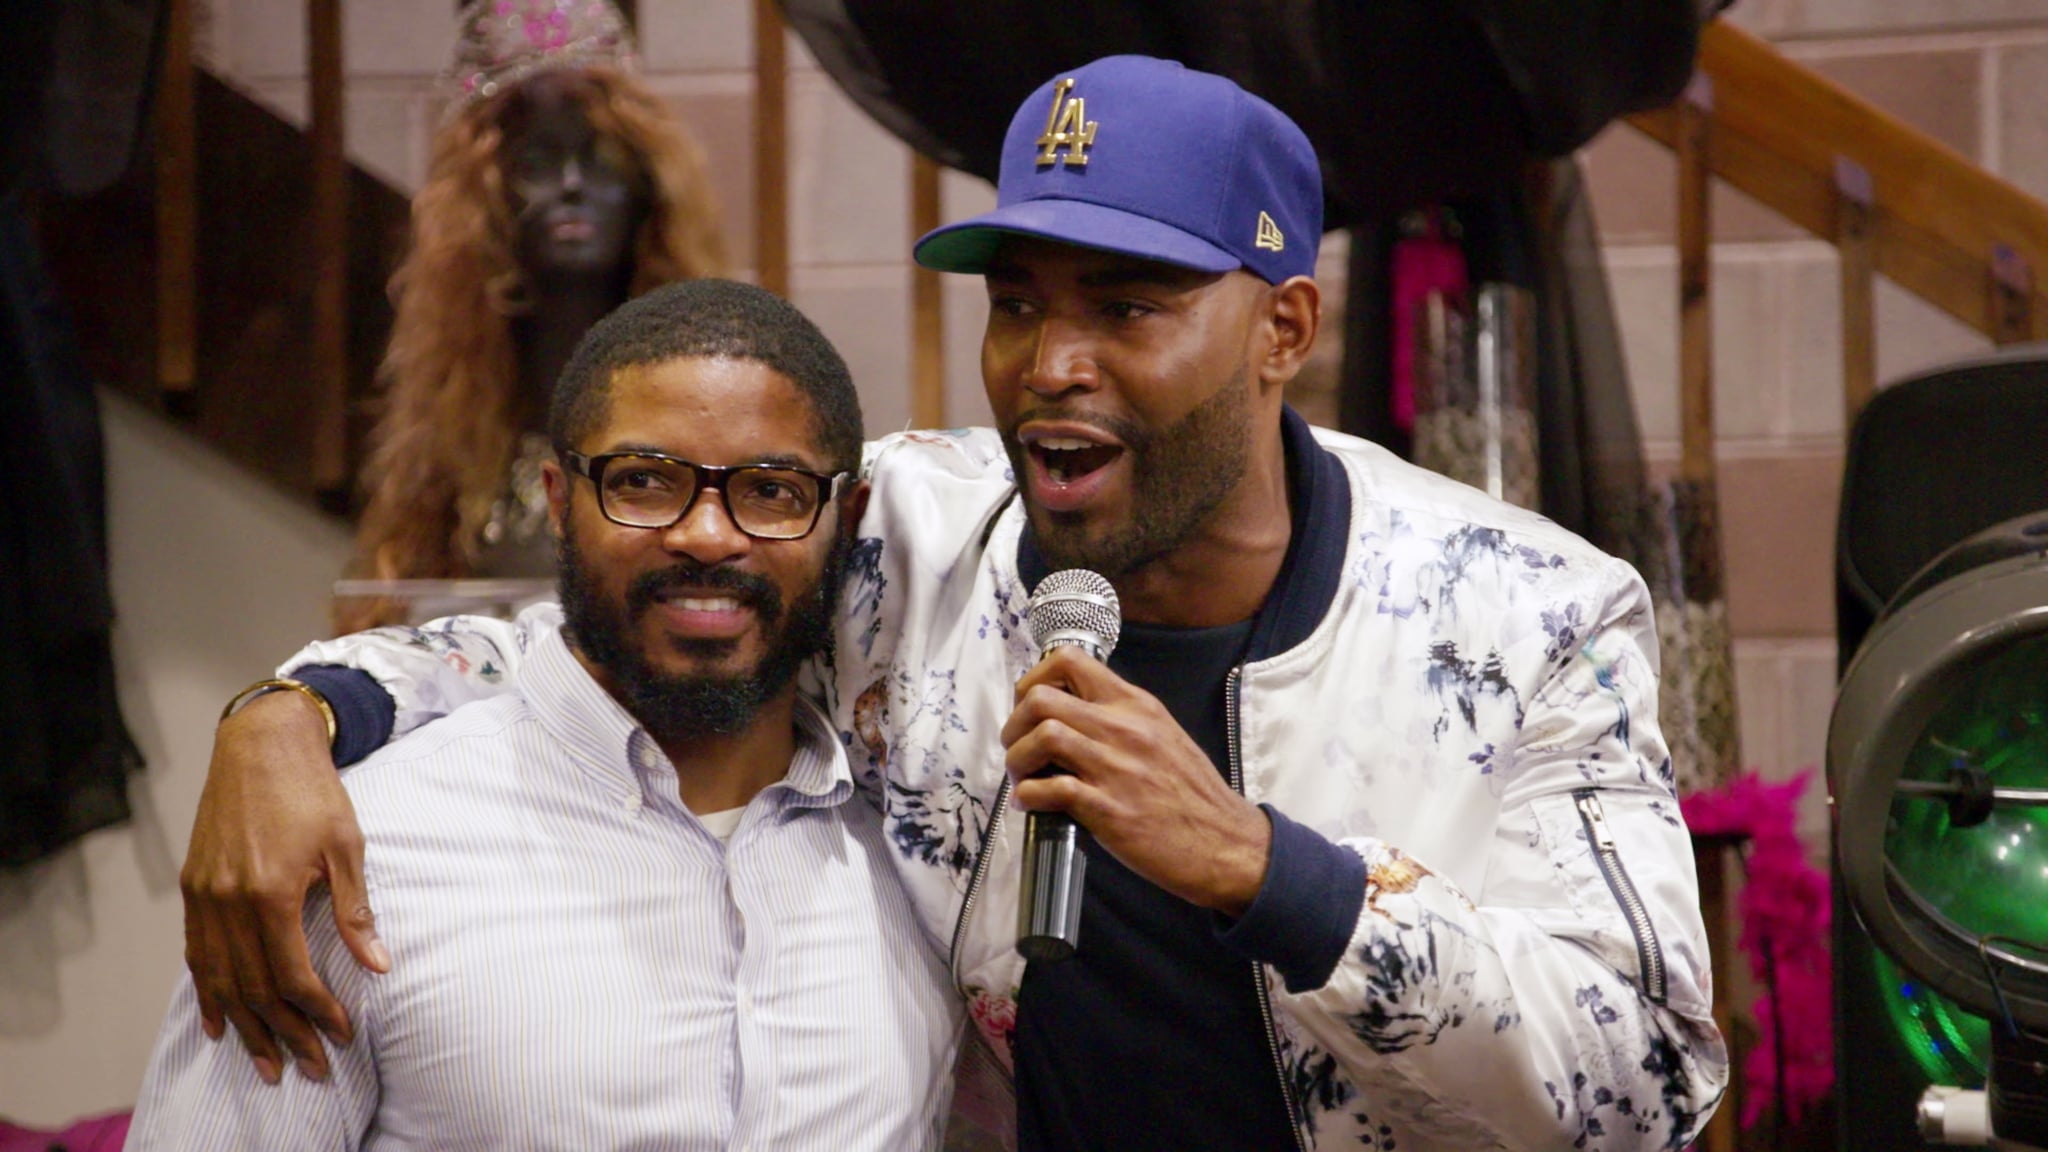 QUEER EYE, (aka QUEER EYE FOR THE STRAIGHT GUY), from left: AJ Brown, Karamo Brown, 'To Gay or Not Too Gay', (Season 1, ep. 104, airs Feb. 7, 2018). photo: Netflix / Courtesy: Everett Collection